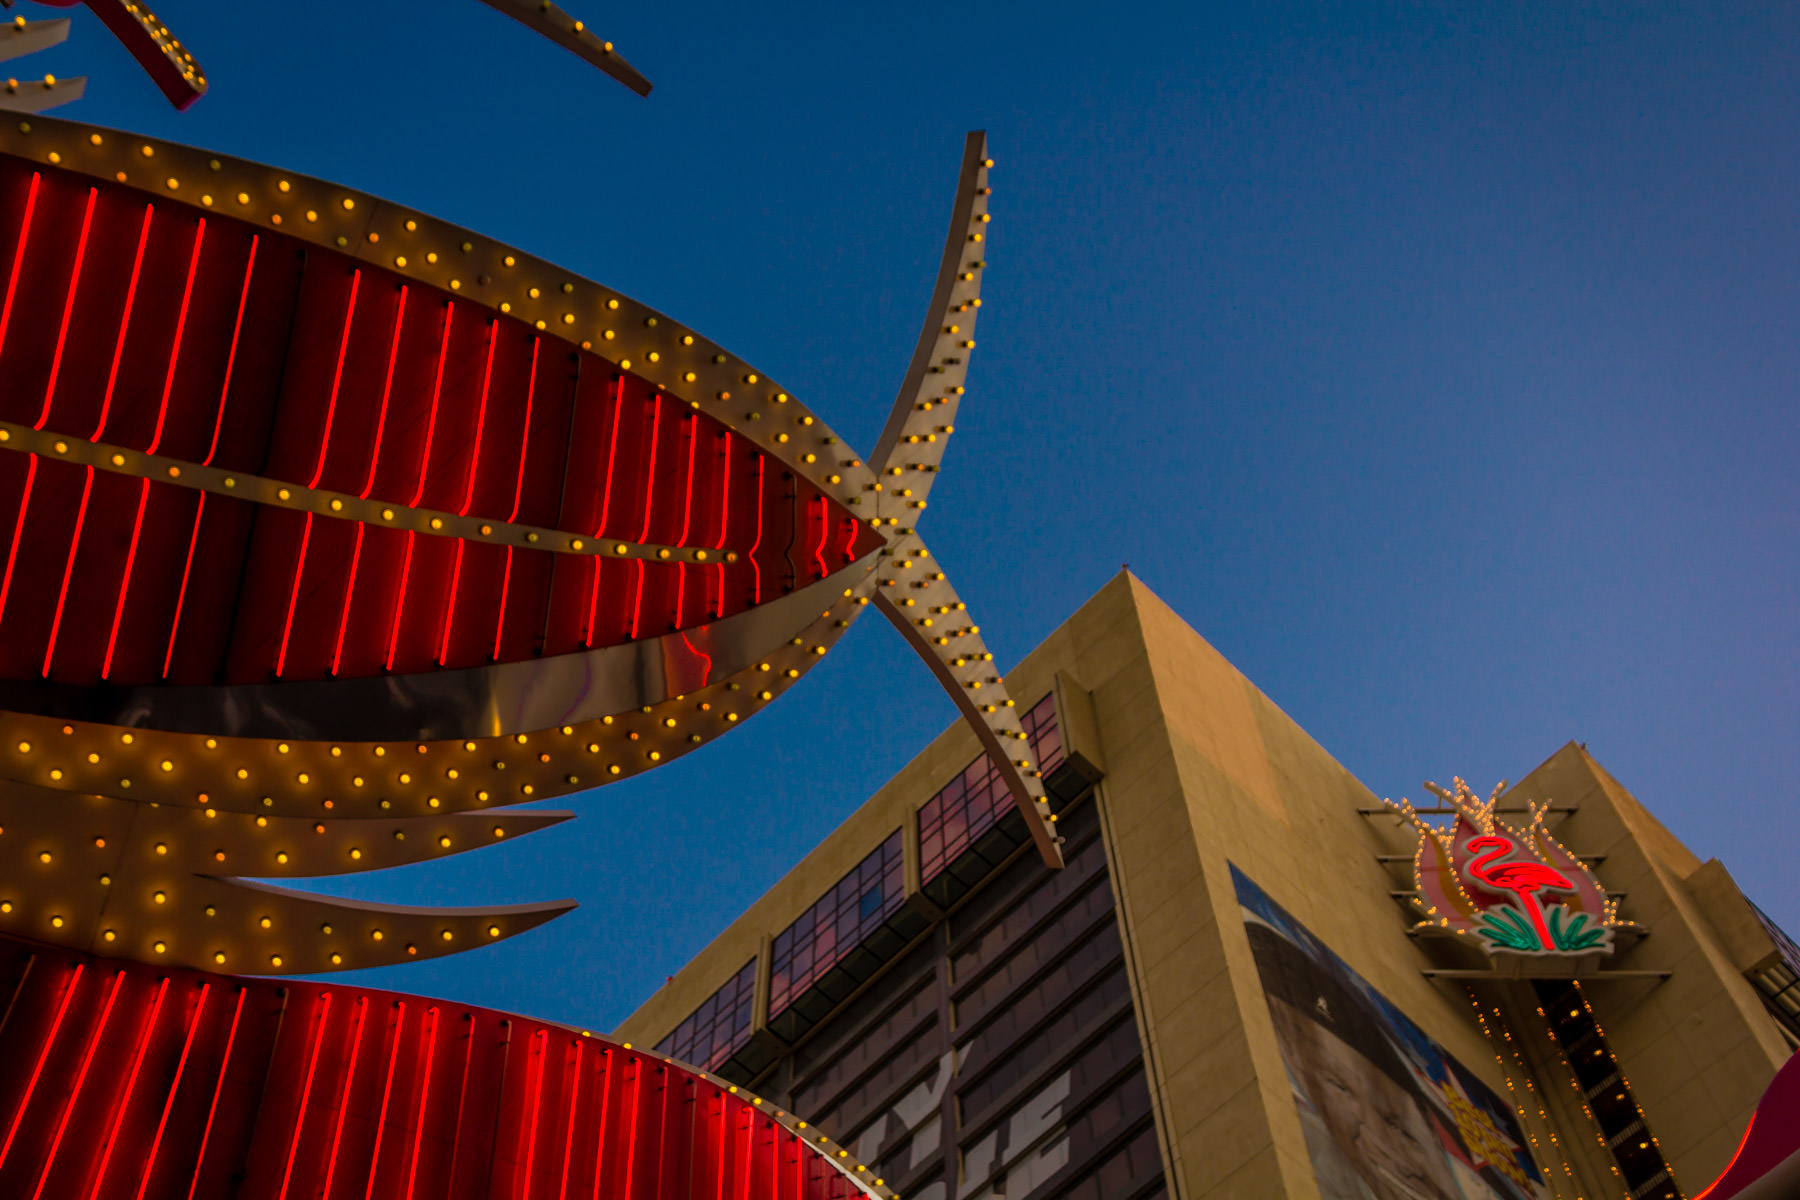 Detail of signage on the Flamingo Hotel & Casino, Las Vegas.